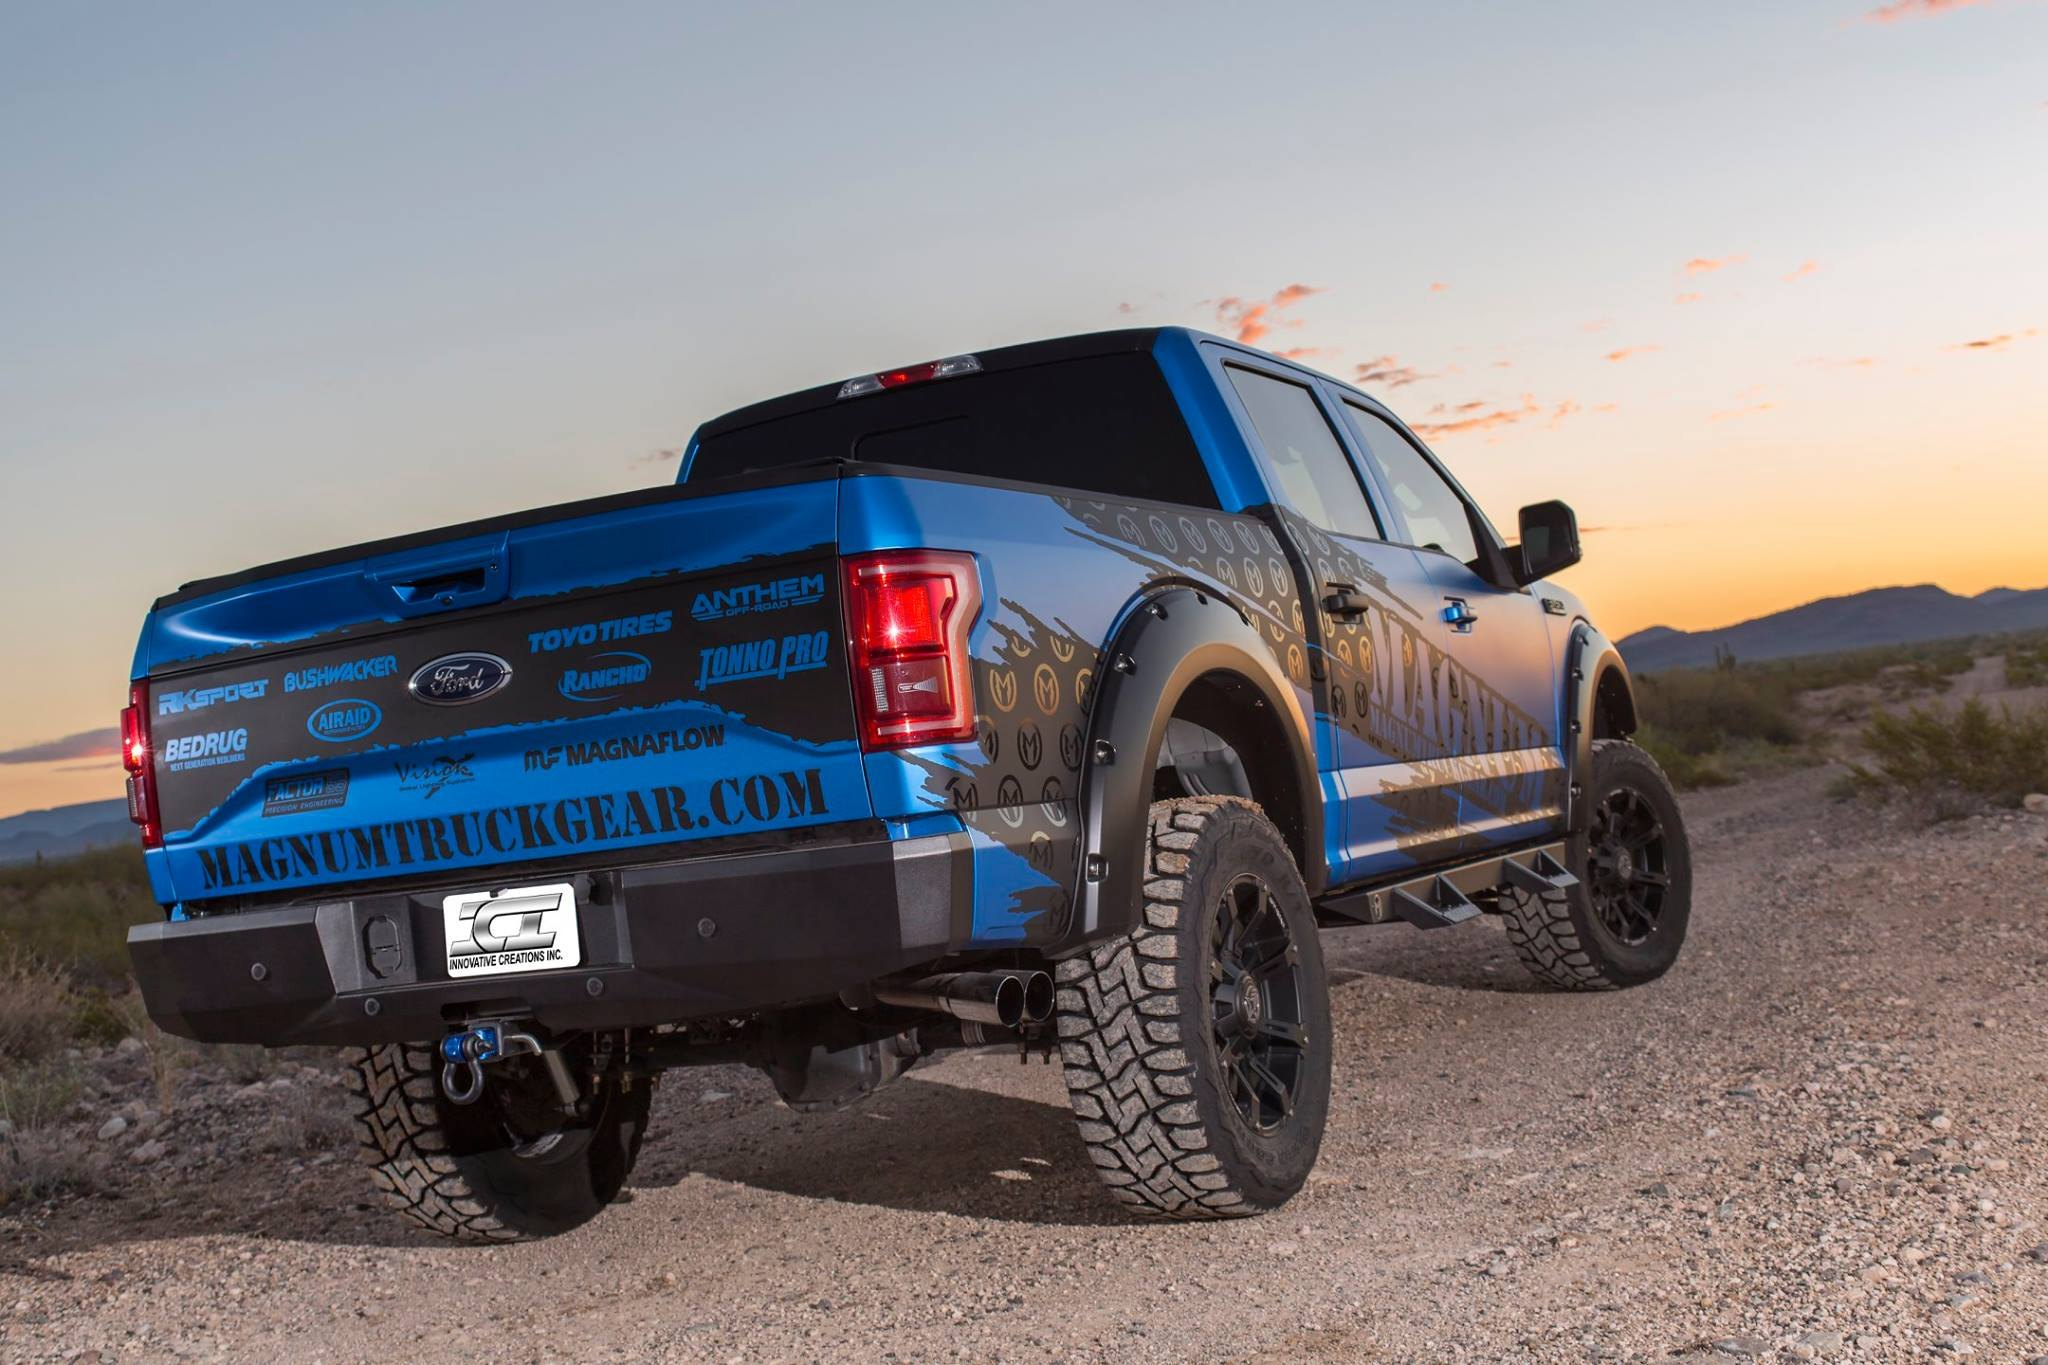 Ford F150 with 6» lift kit and 35» tires - Photo by ICI Innovative Creations Inc.